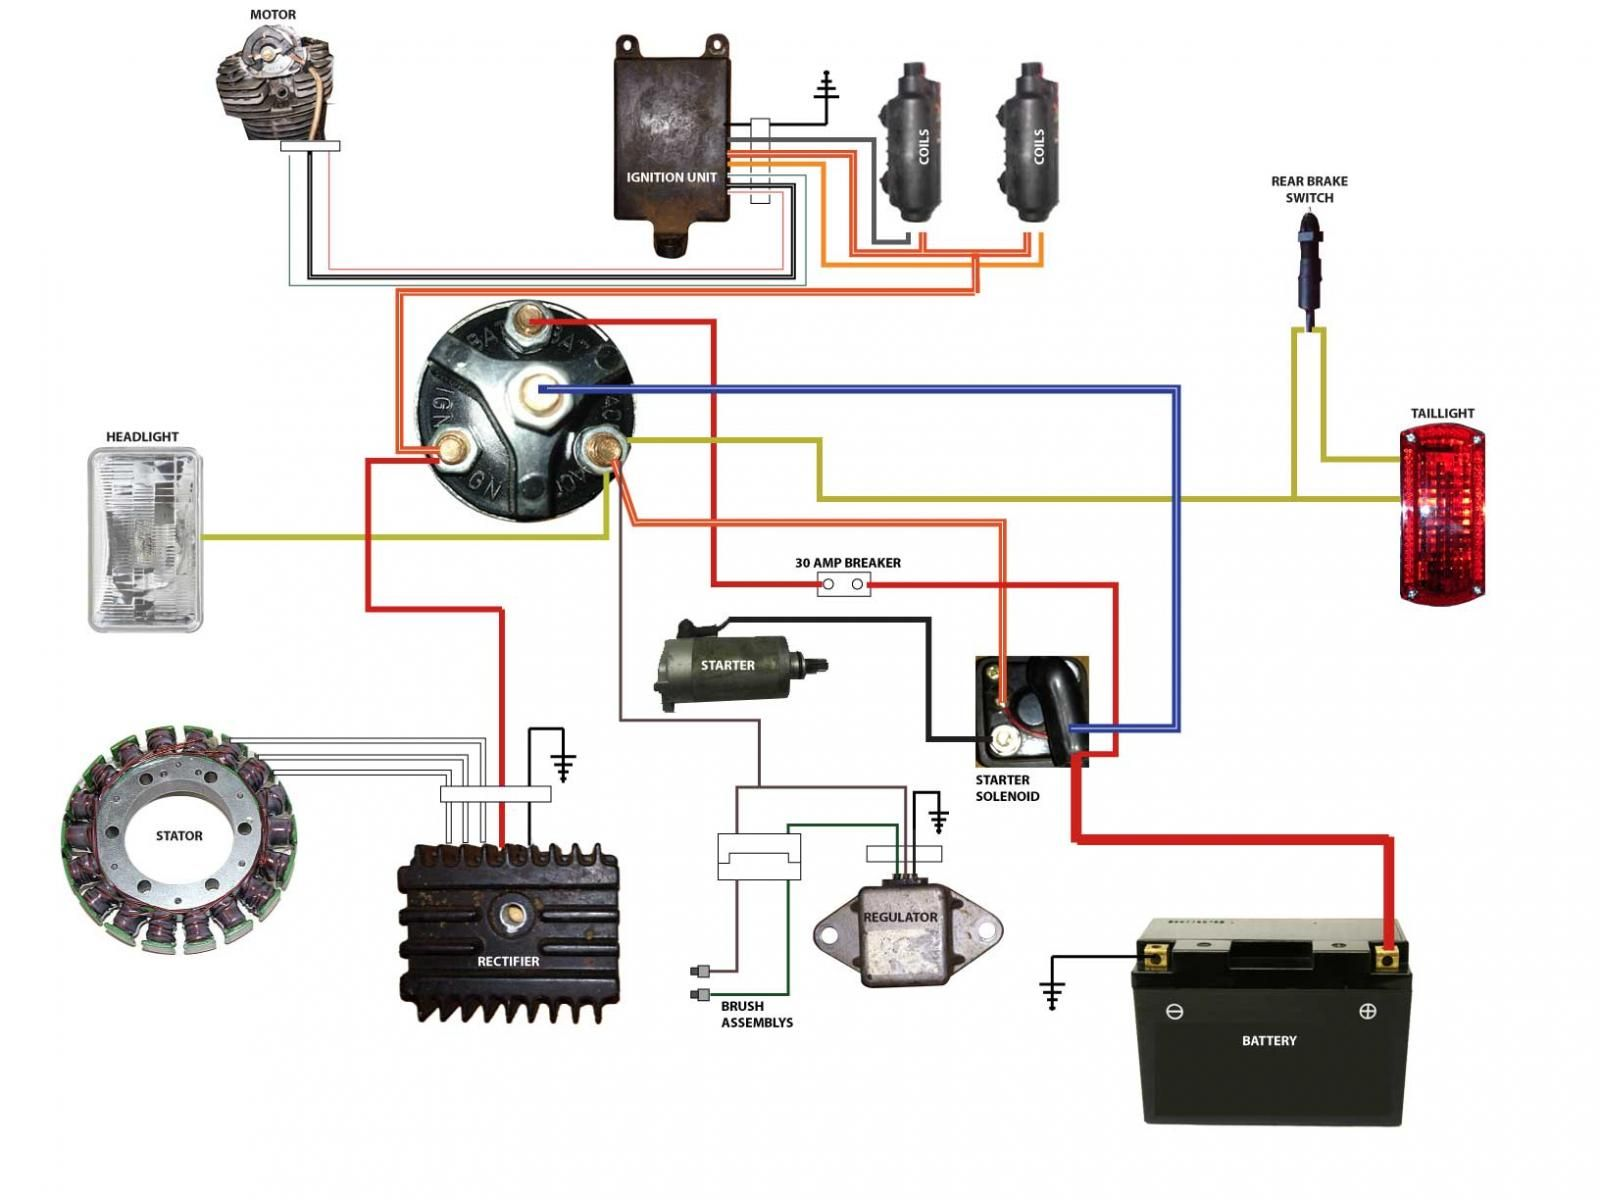 hight resolution of yamaha sr500 motorcycle wiring harness diagram wiring diagramwiring diagram yamaha sr 500 wiring library simplified wiring